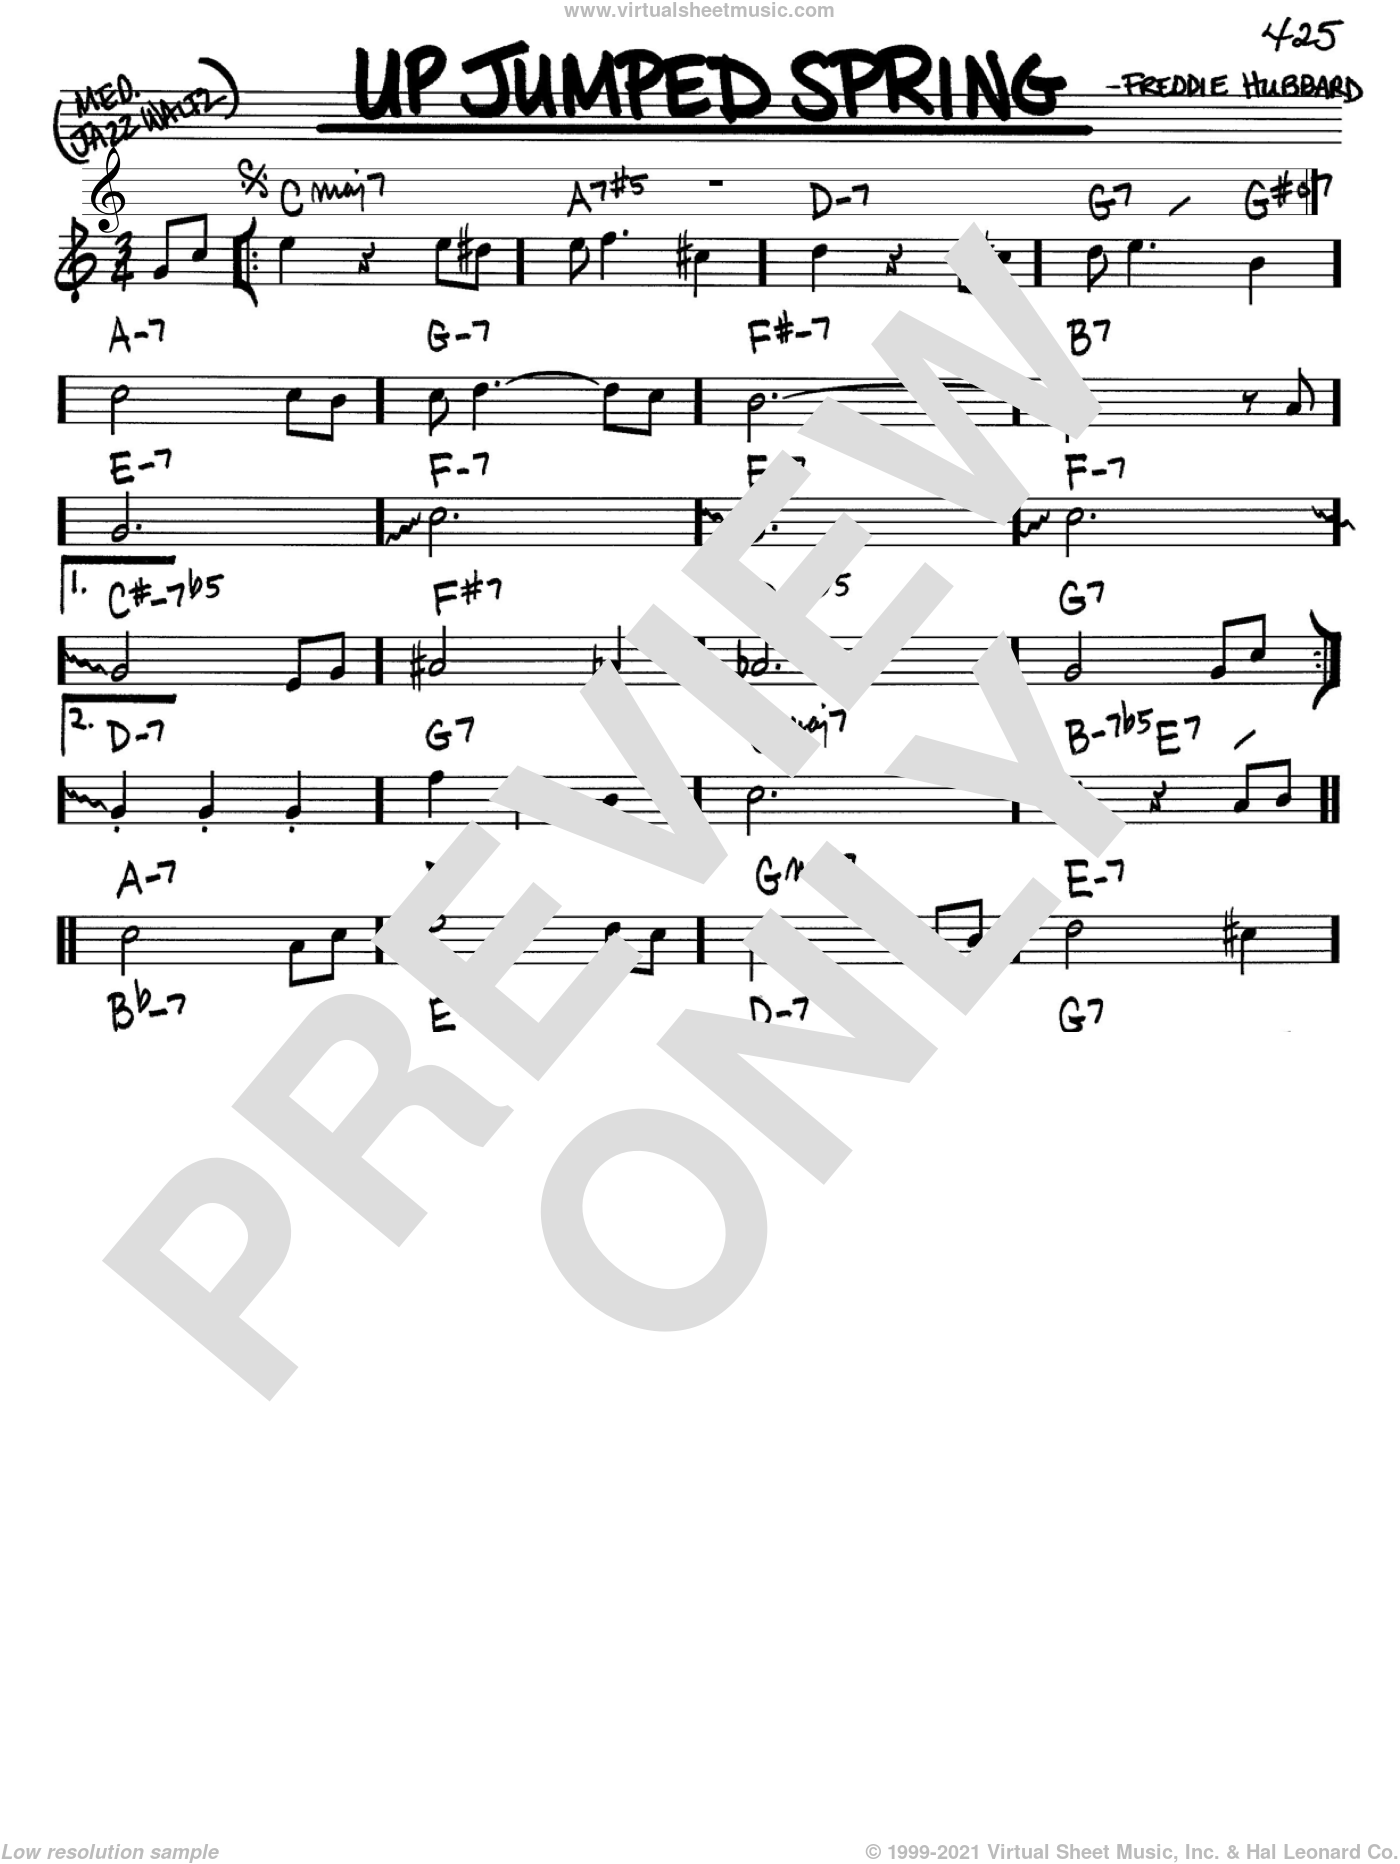 Up Jumped Spring sheet music for voice and other instruments (Bb) by Freddie Hubbard